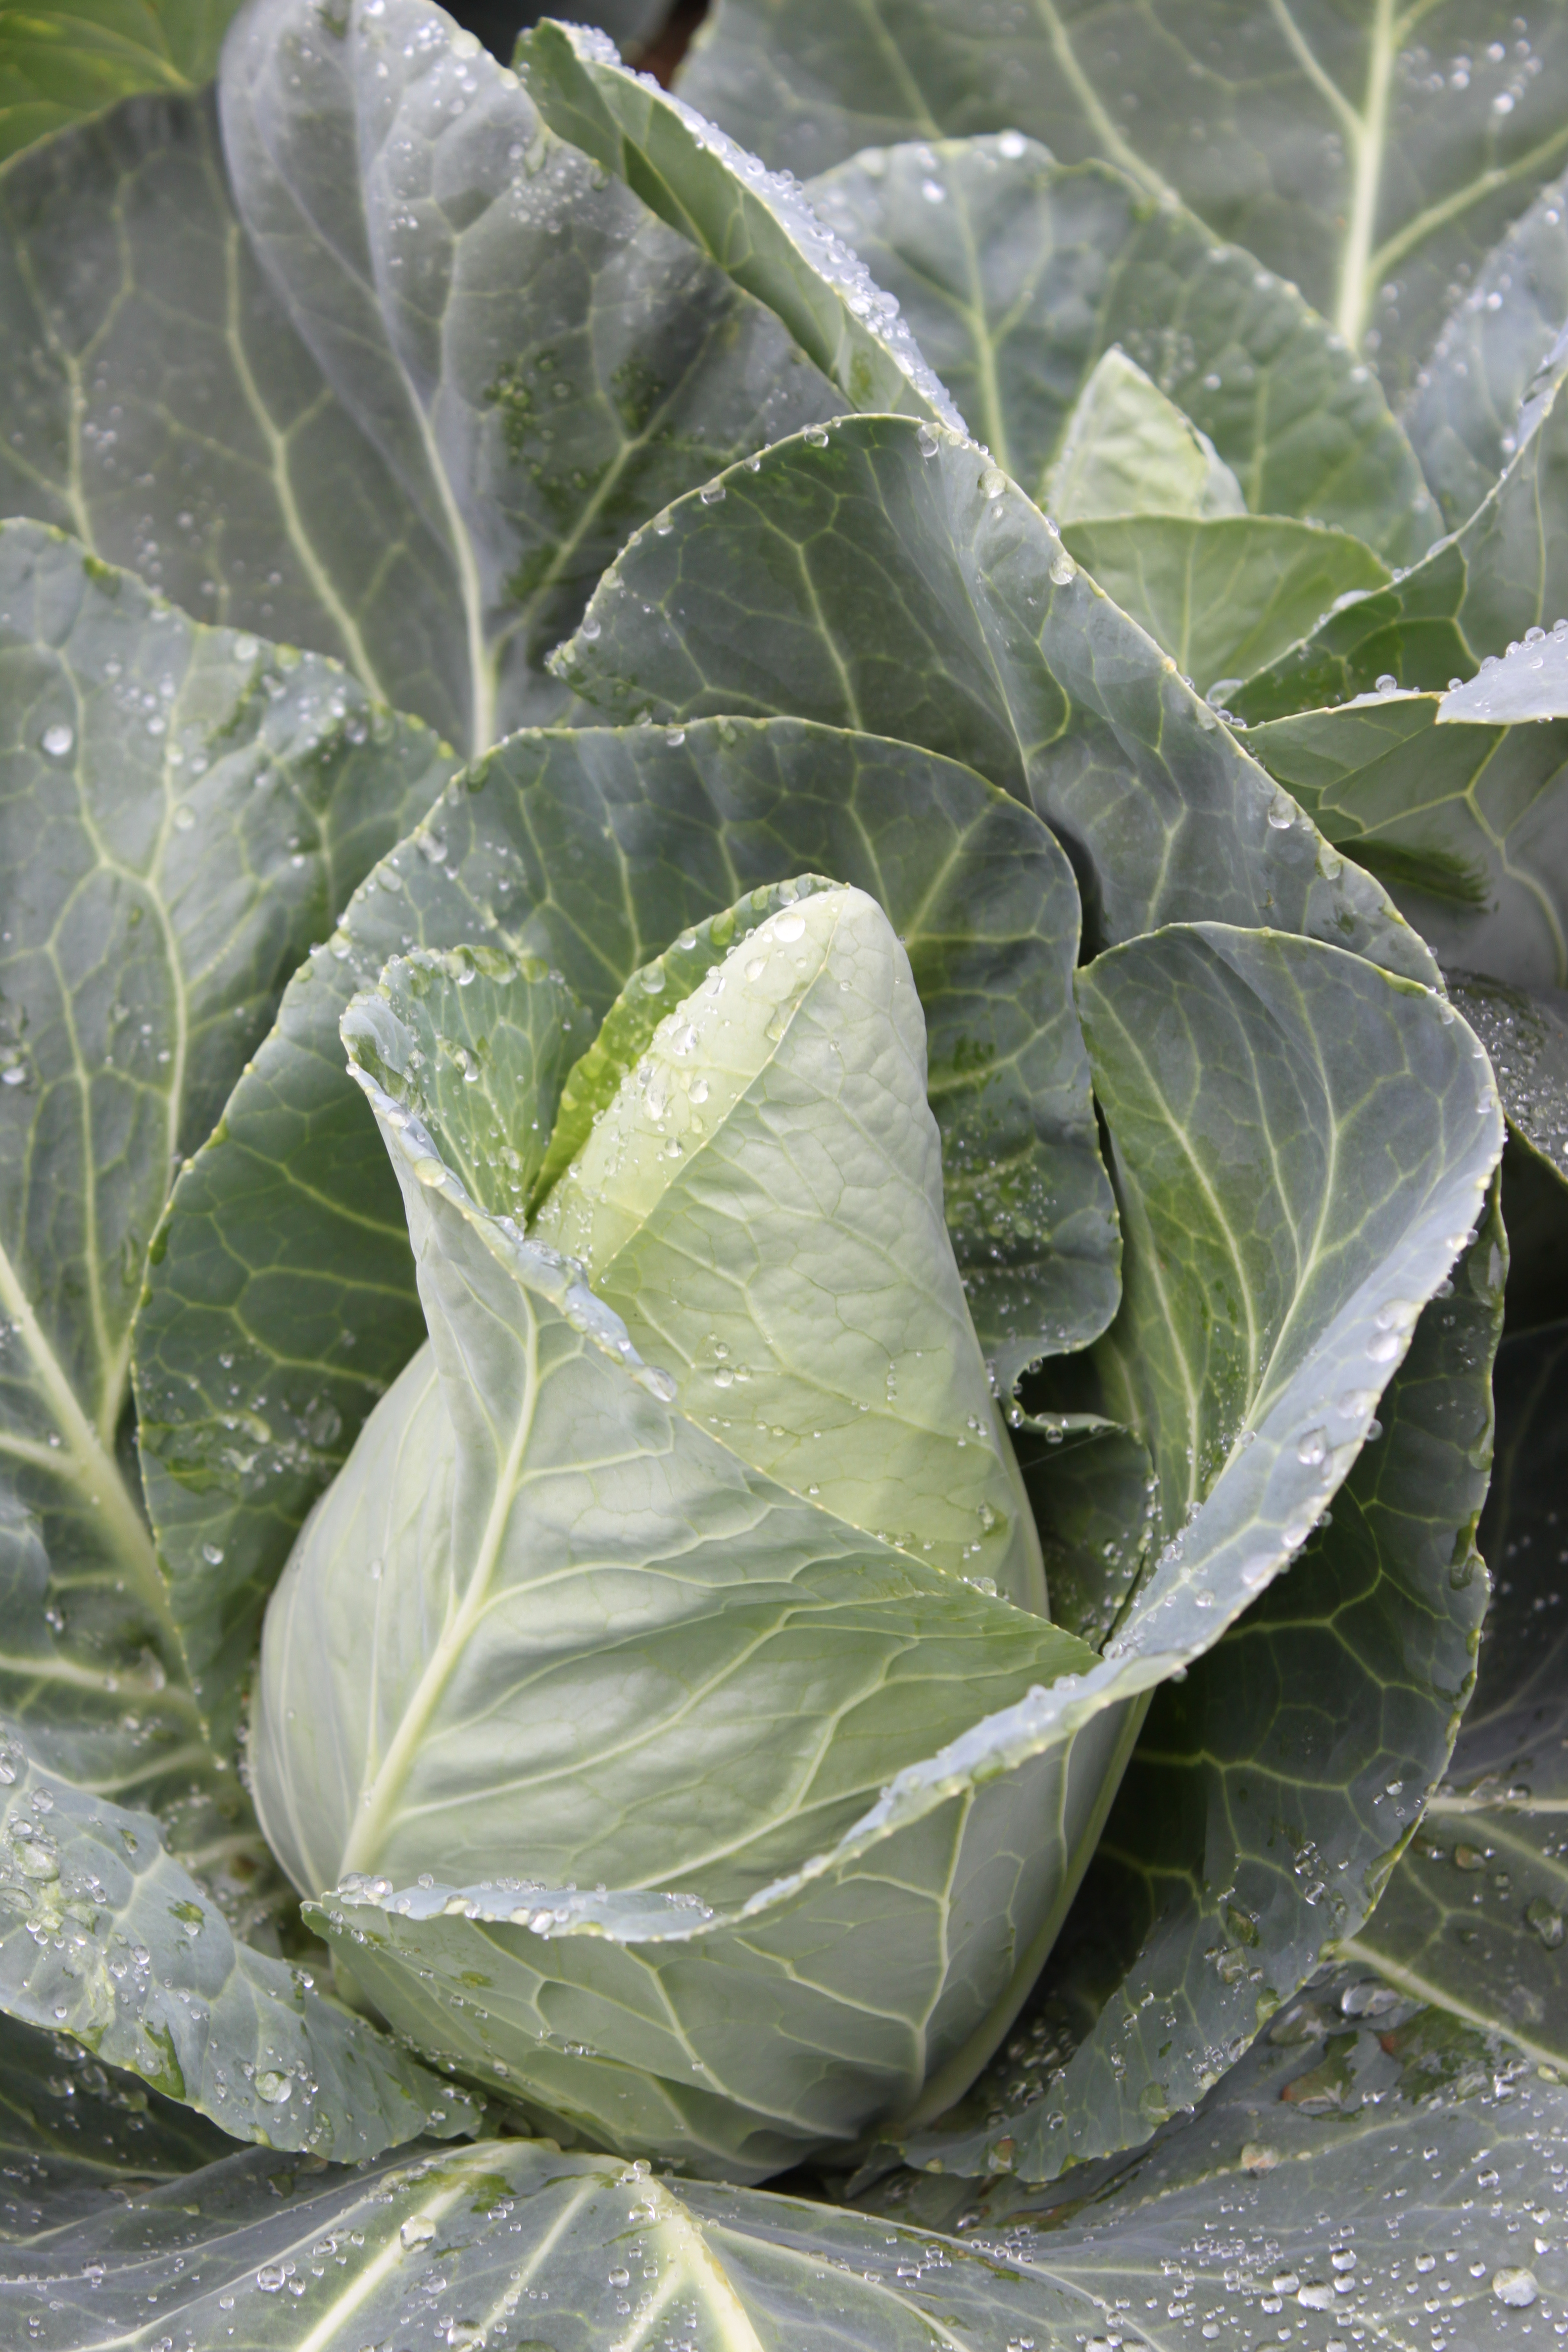 Caraflex F1 pointed cabbage